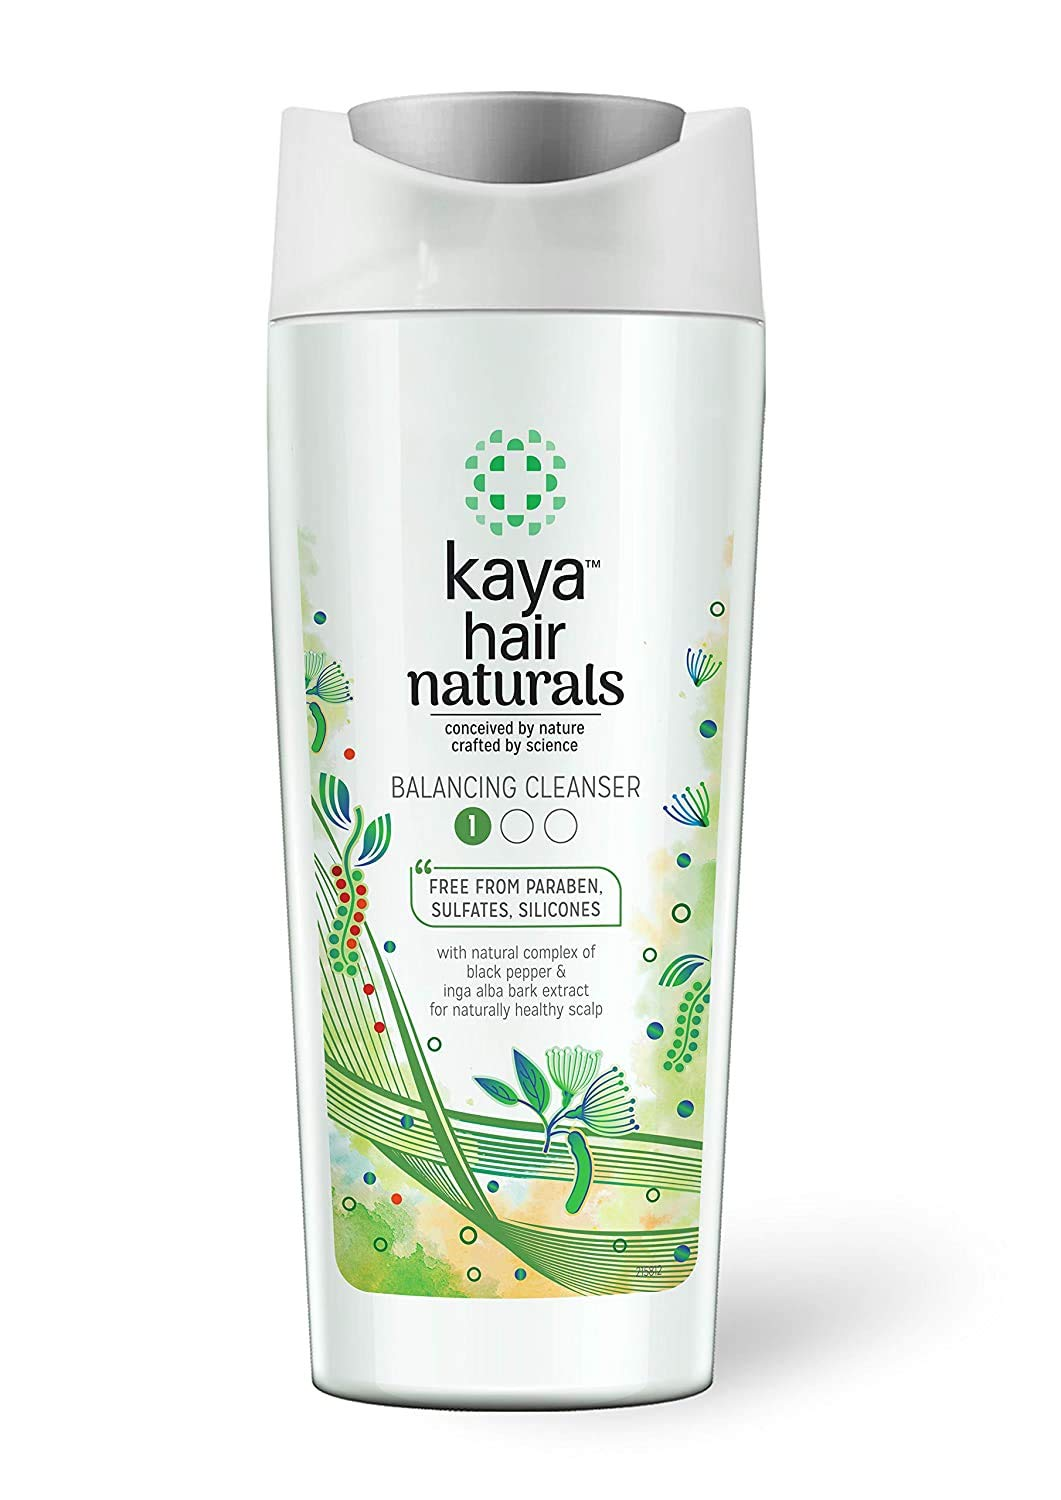 Kaya Clinic Balancing Cleanser Shampoo Sulfates No Paraben New life Don't miss the campaign